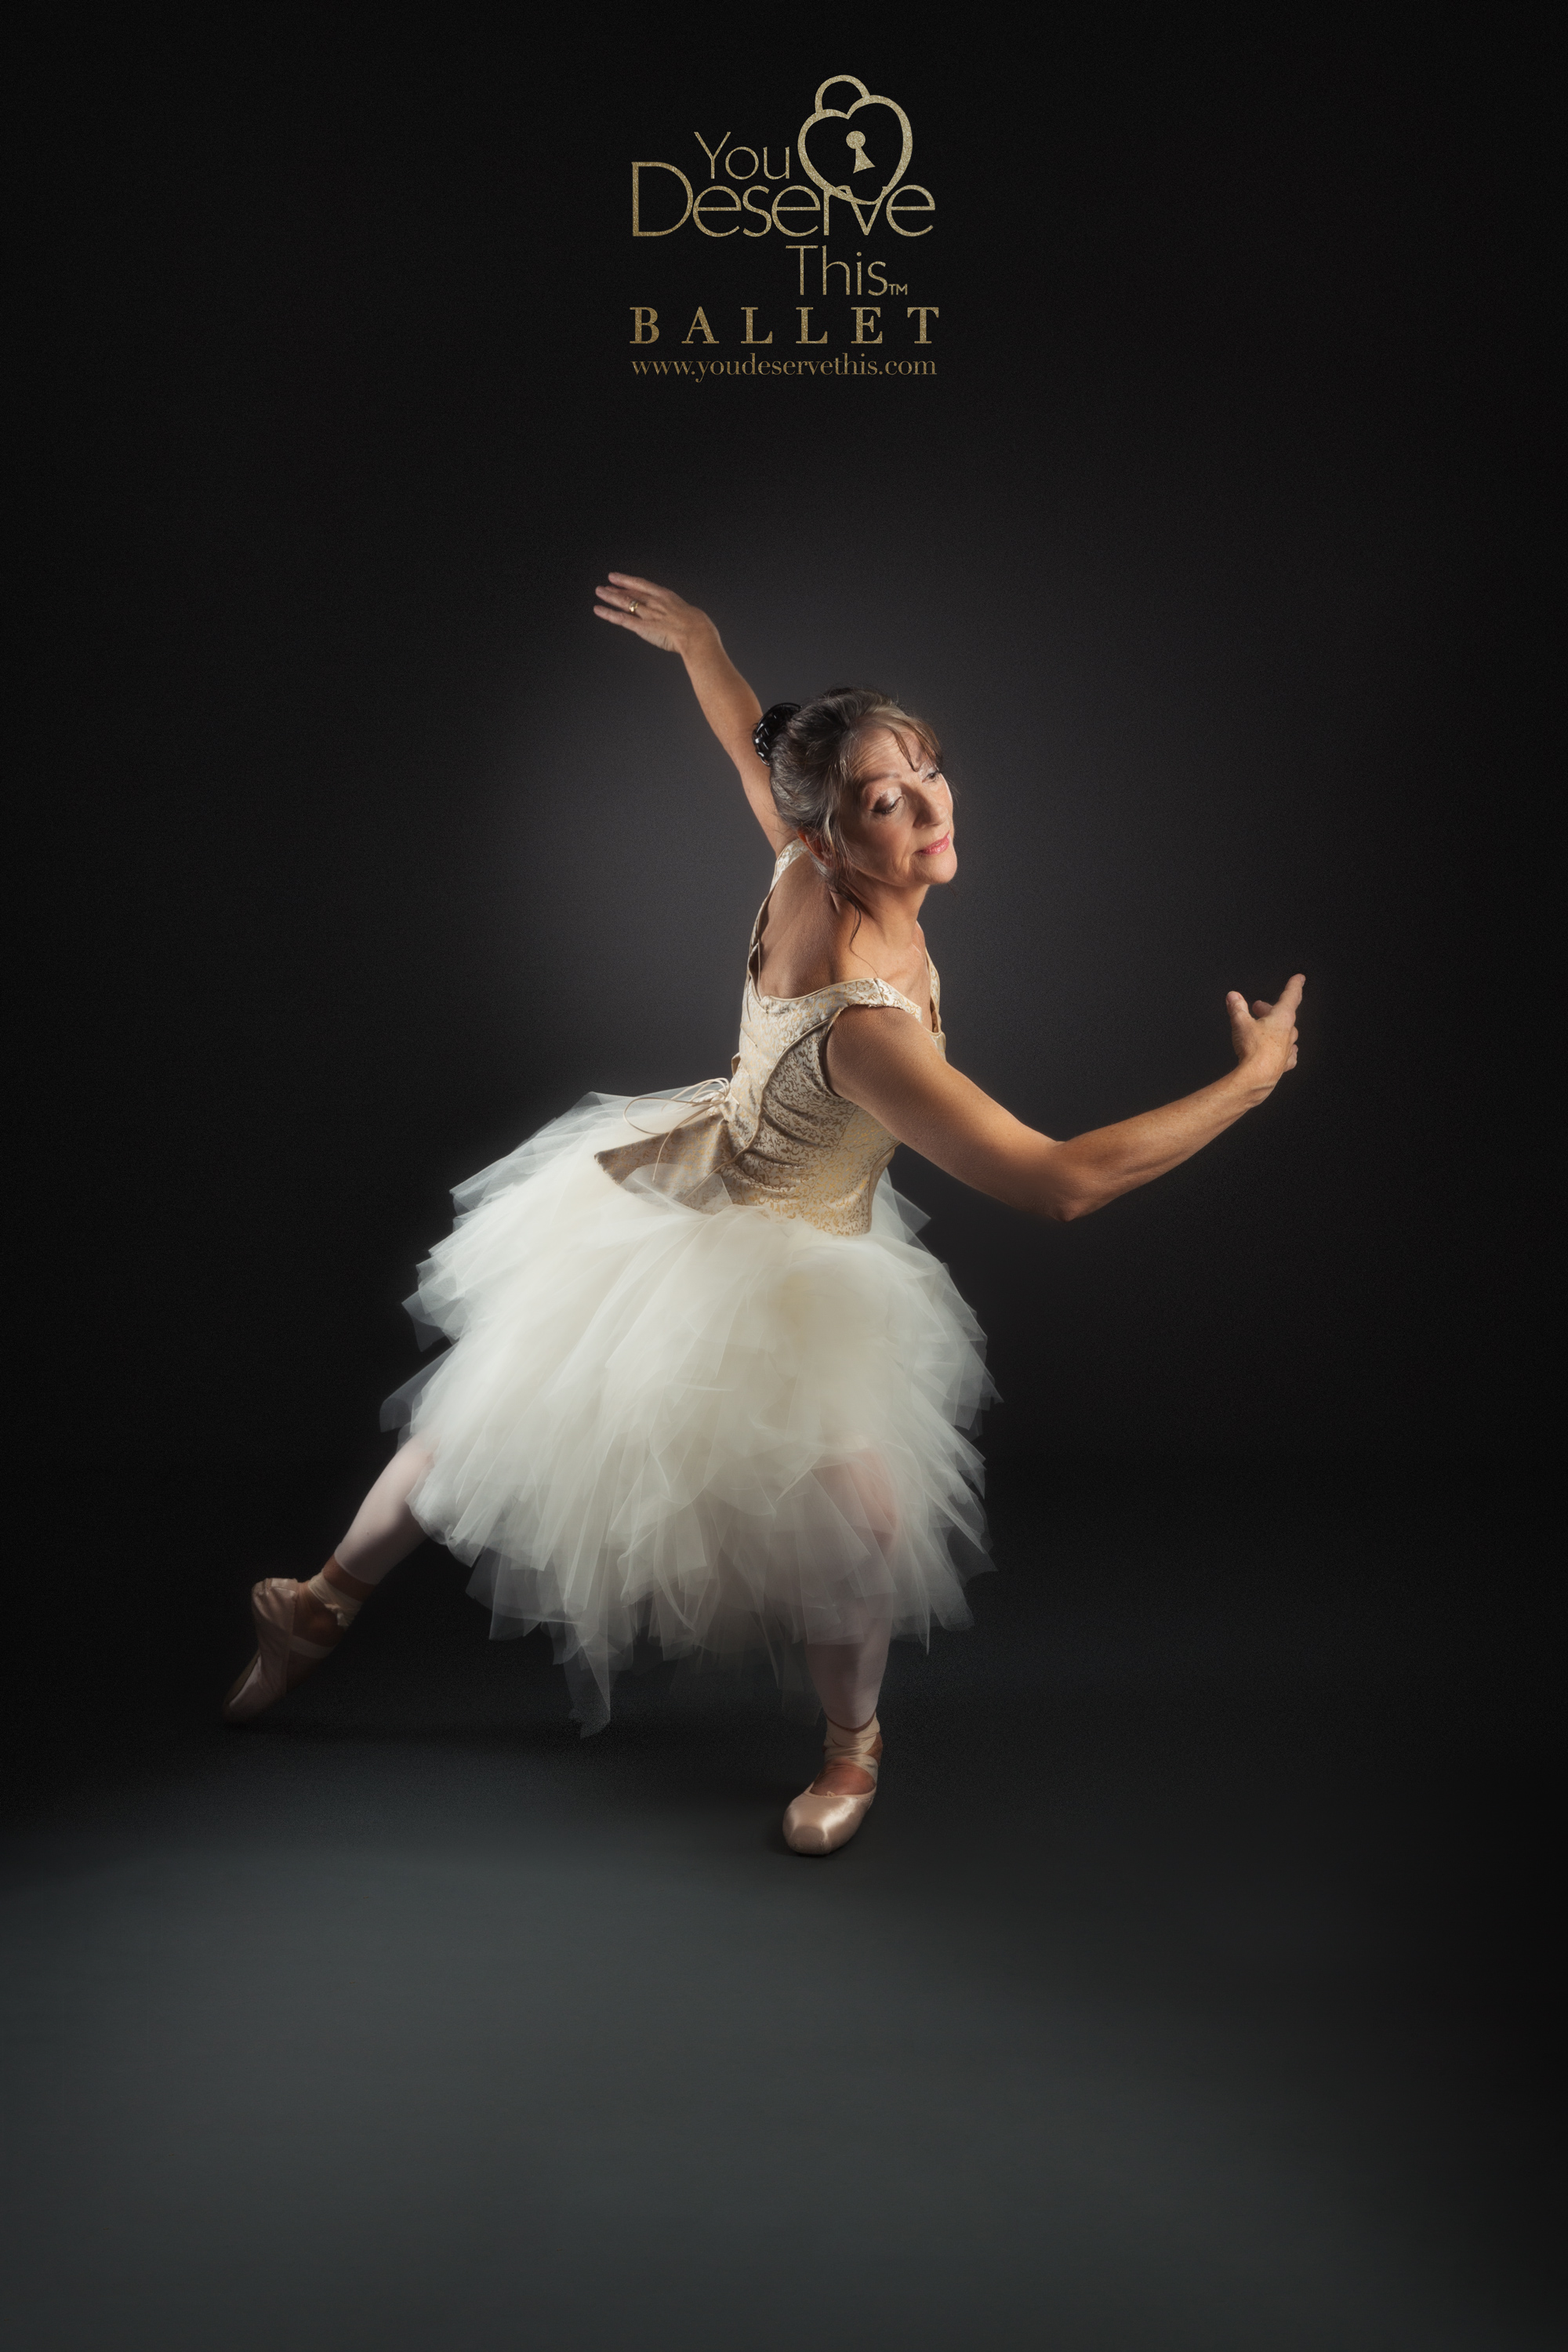 Dramatic Ballet Photography You Deserve This www.youdeservethis.com